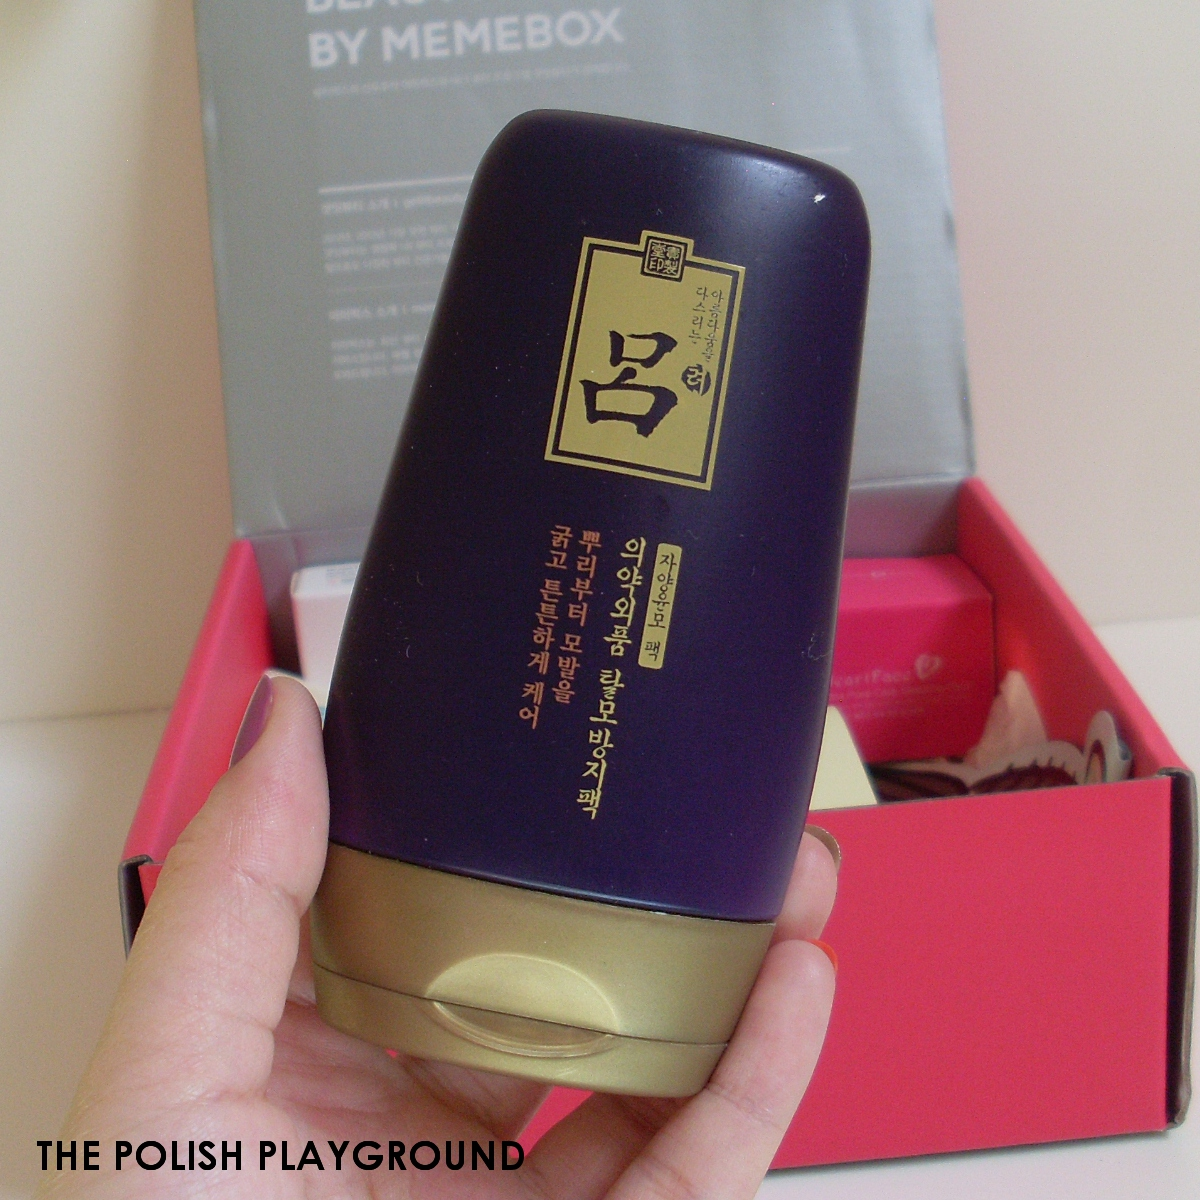 Memebox Luckybox #3 Unboxing - Ryoe Jayang Yunmo Anti-hairloss Hair Pack